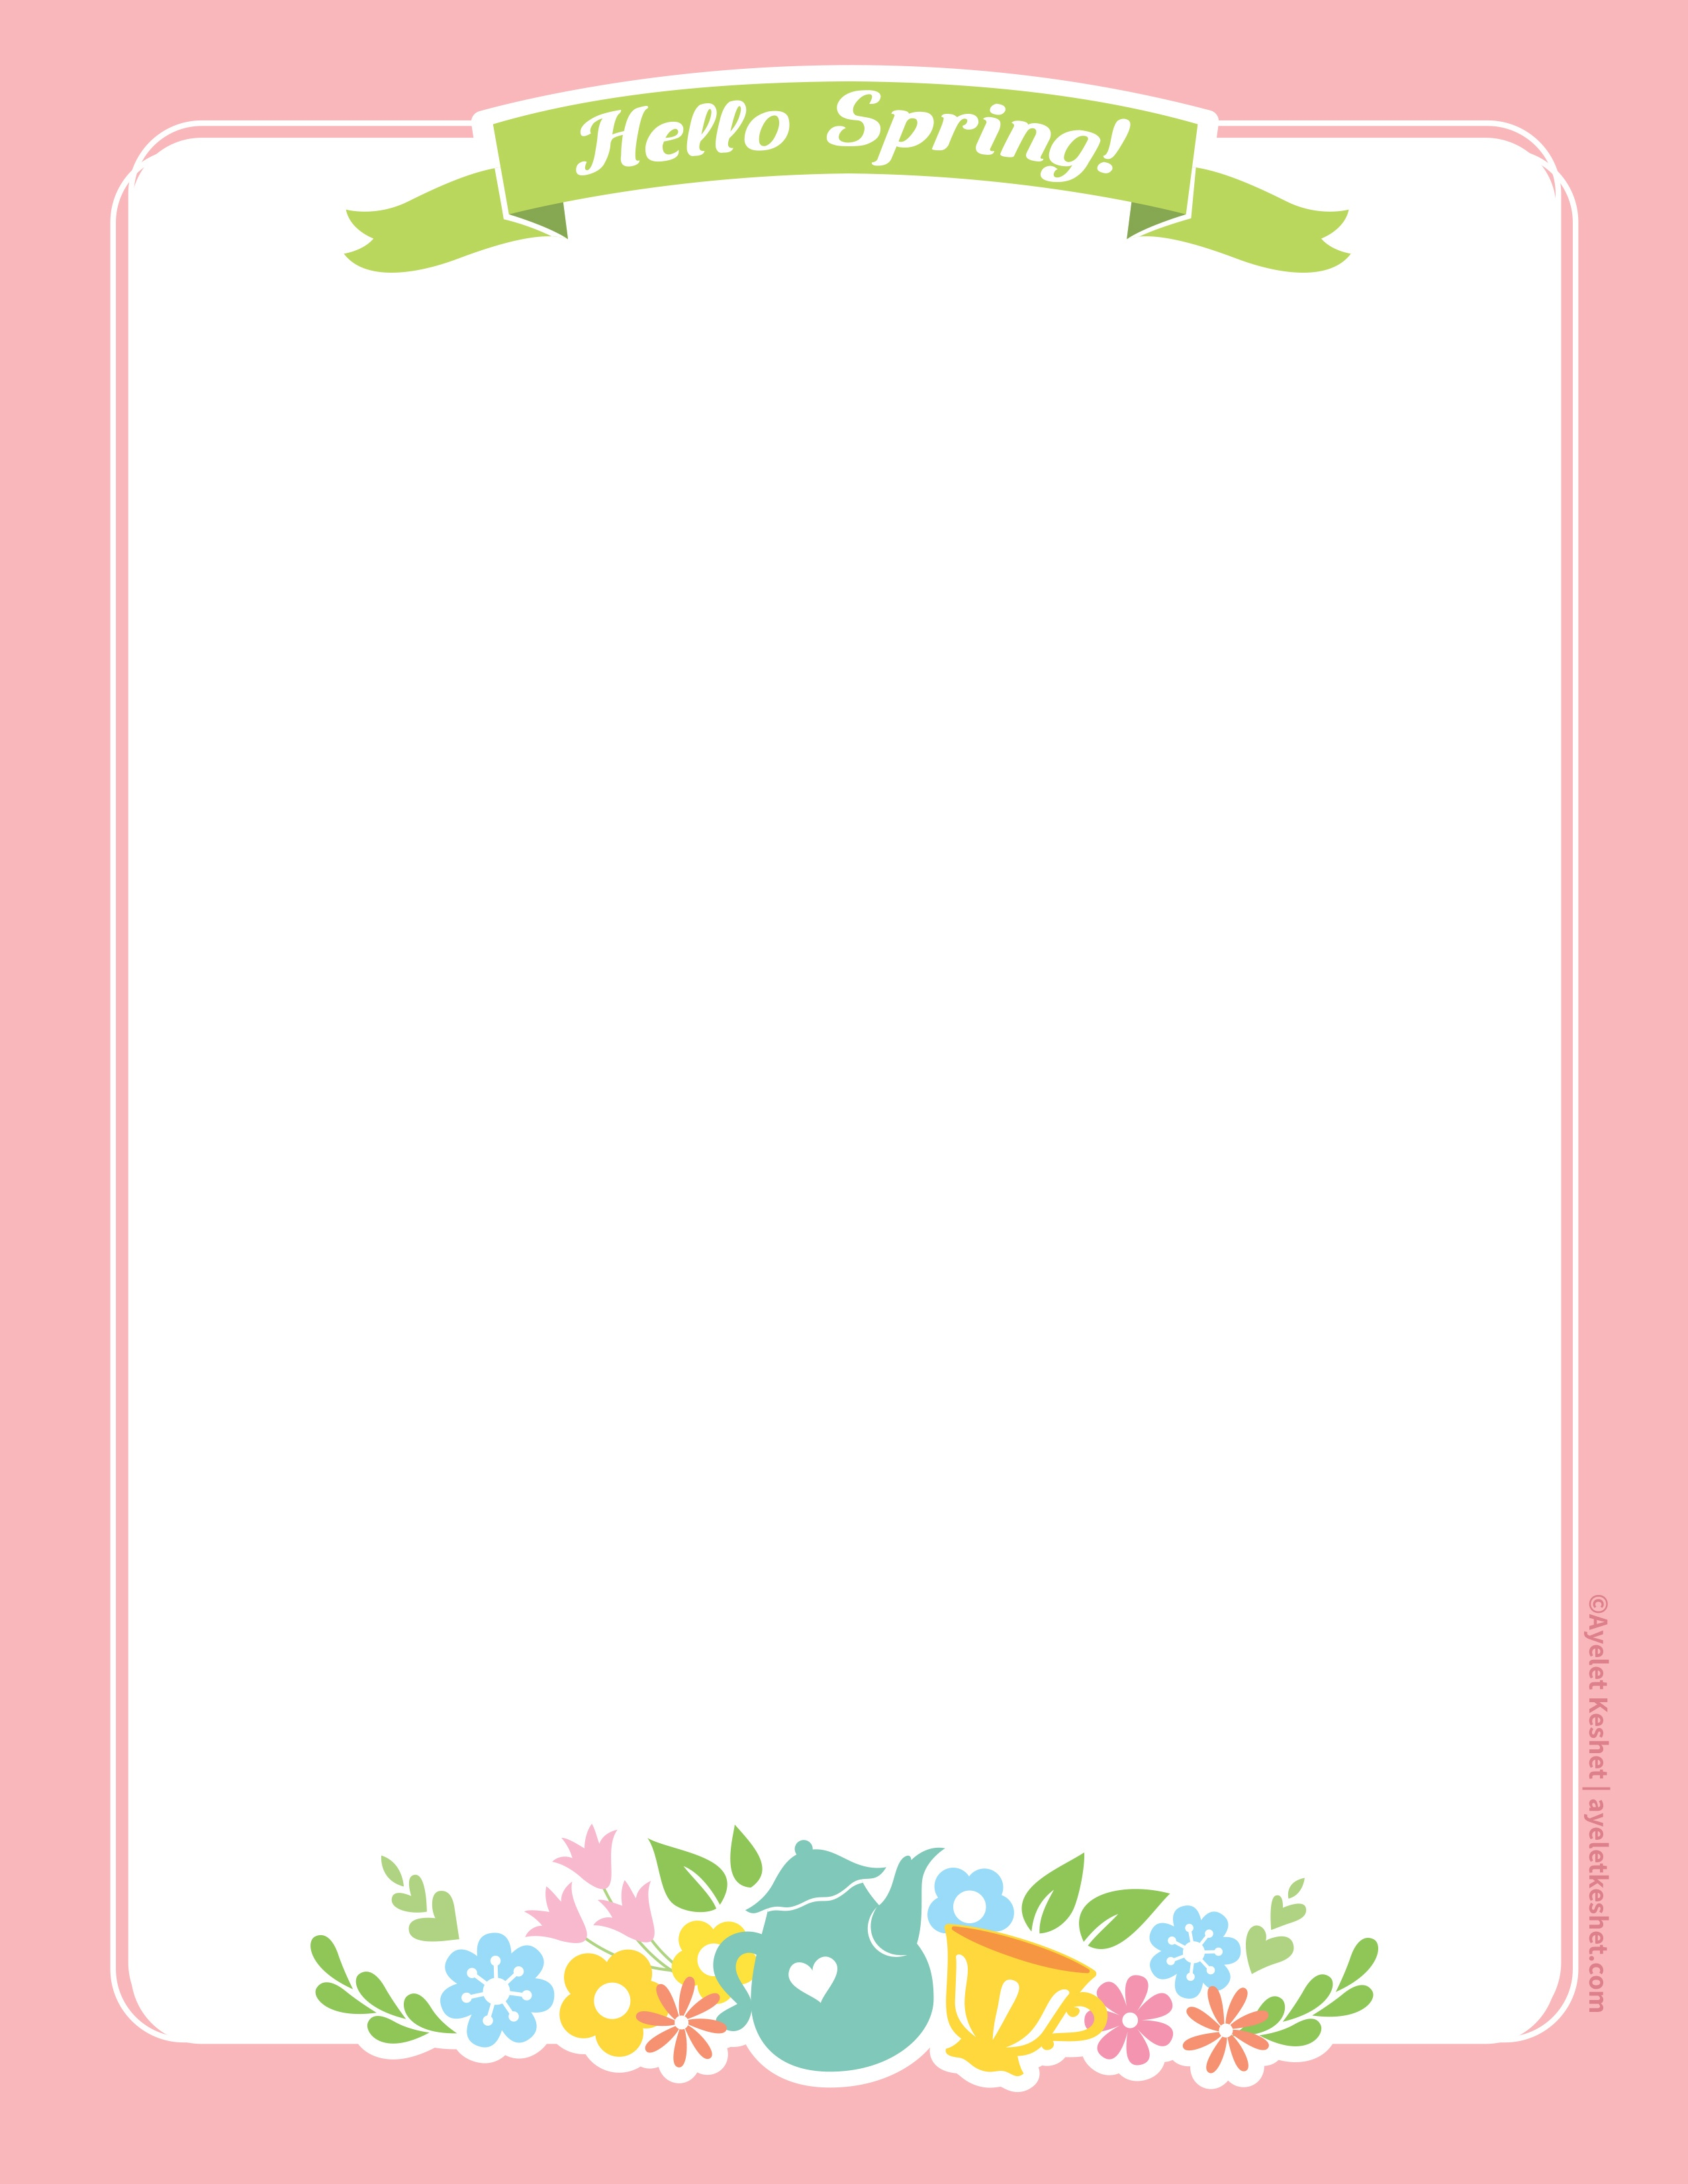 Lovely Free Printable Stationery Paper For Spring - Ayelet Keshet - Free Printable Spring Stationery